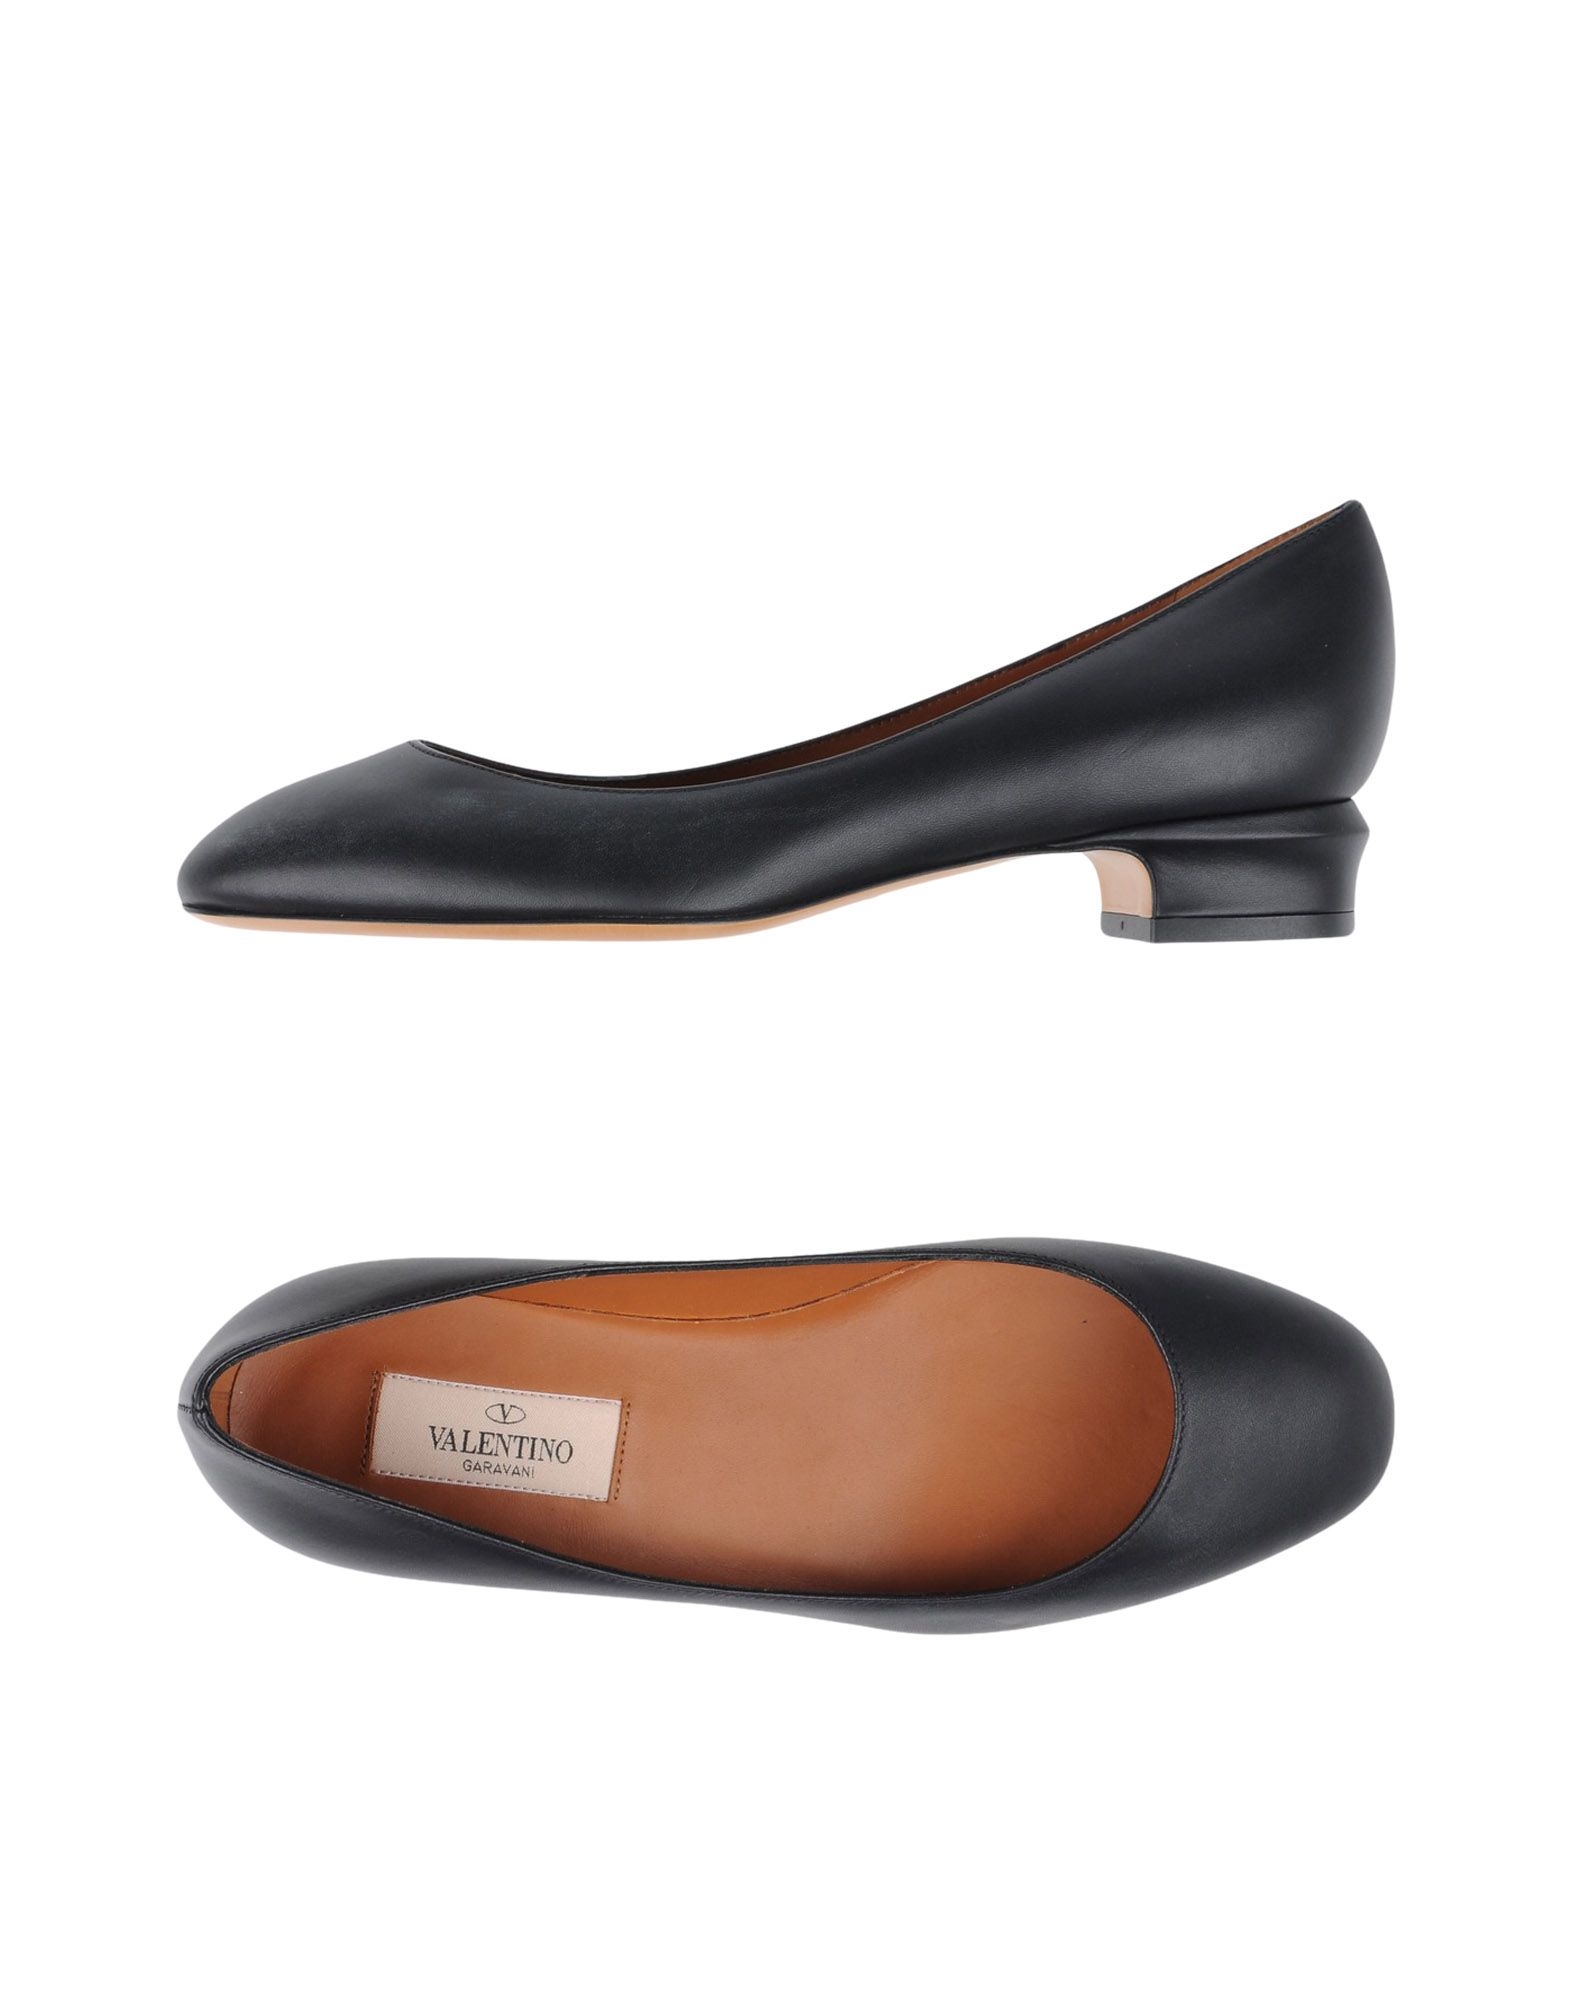 athletic shoe and valentino shoe incorporation